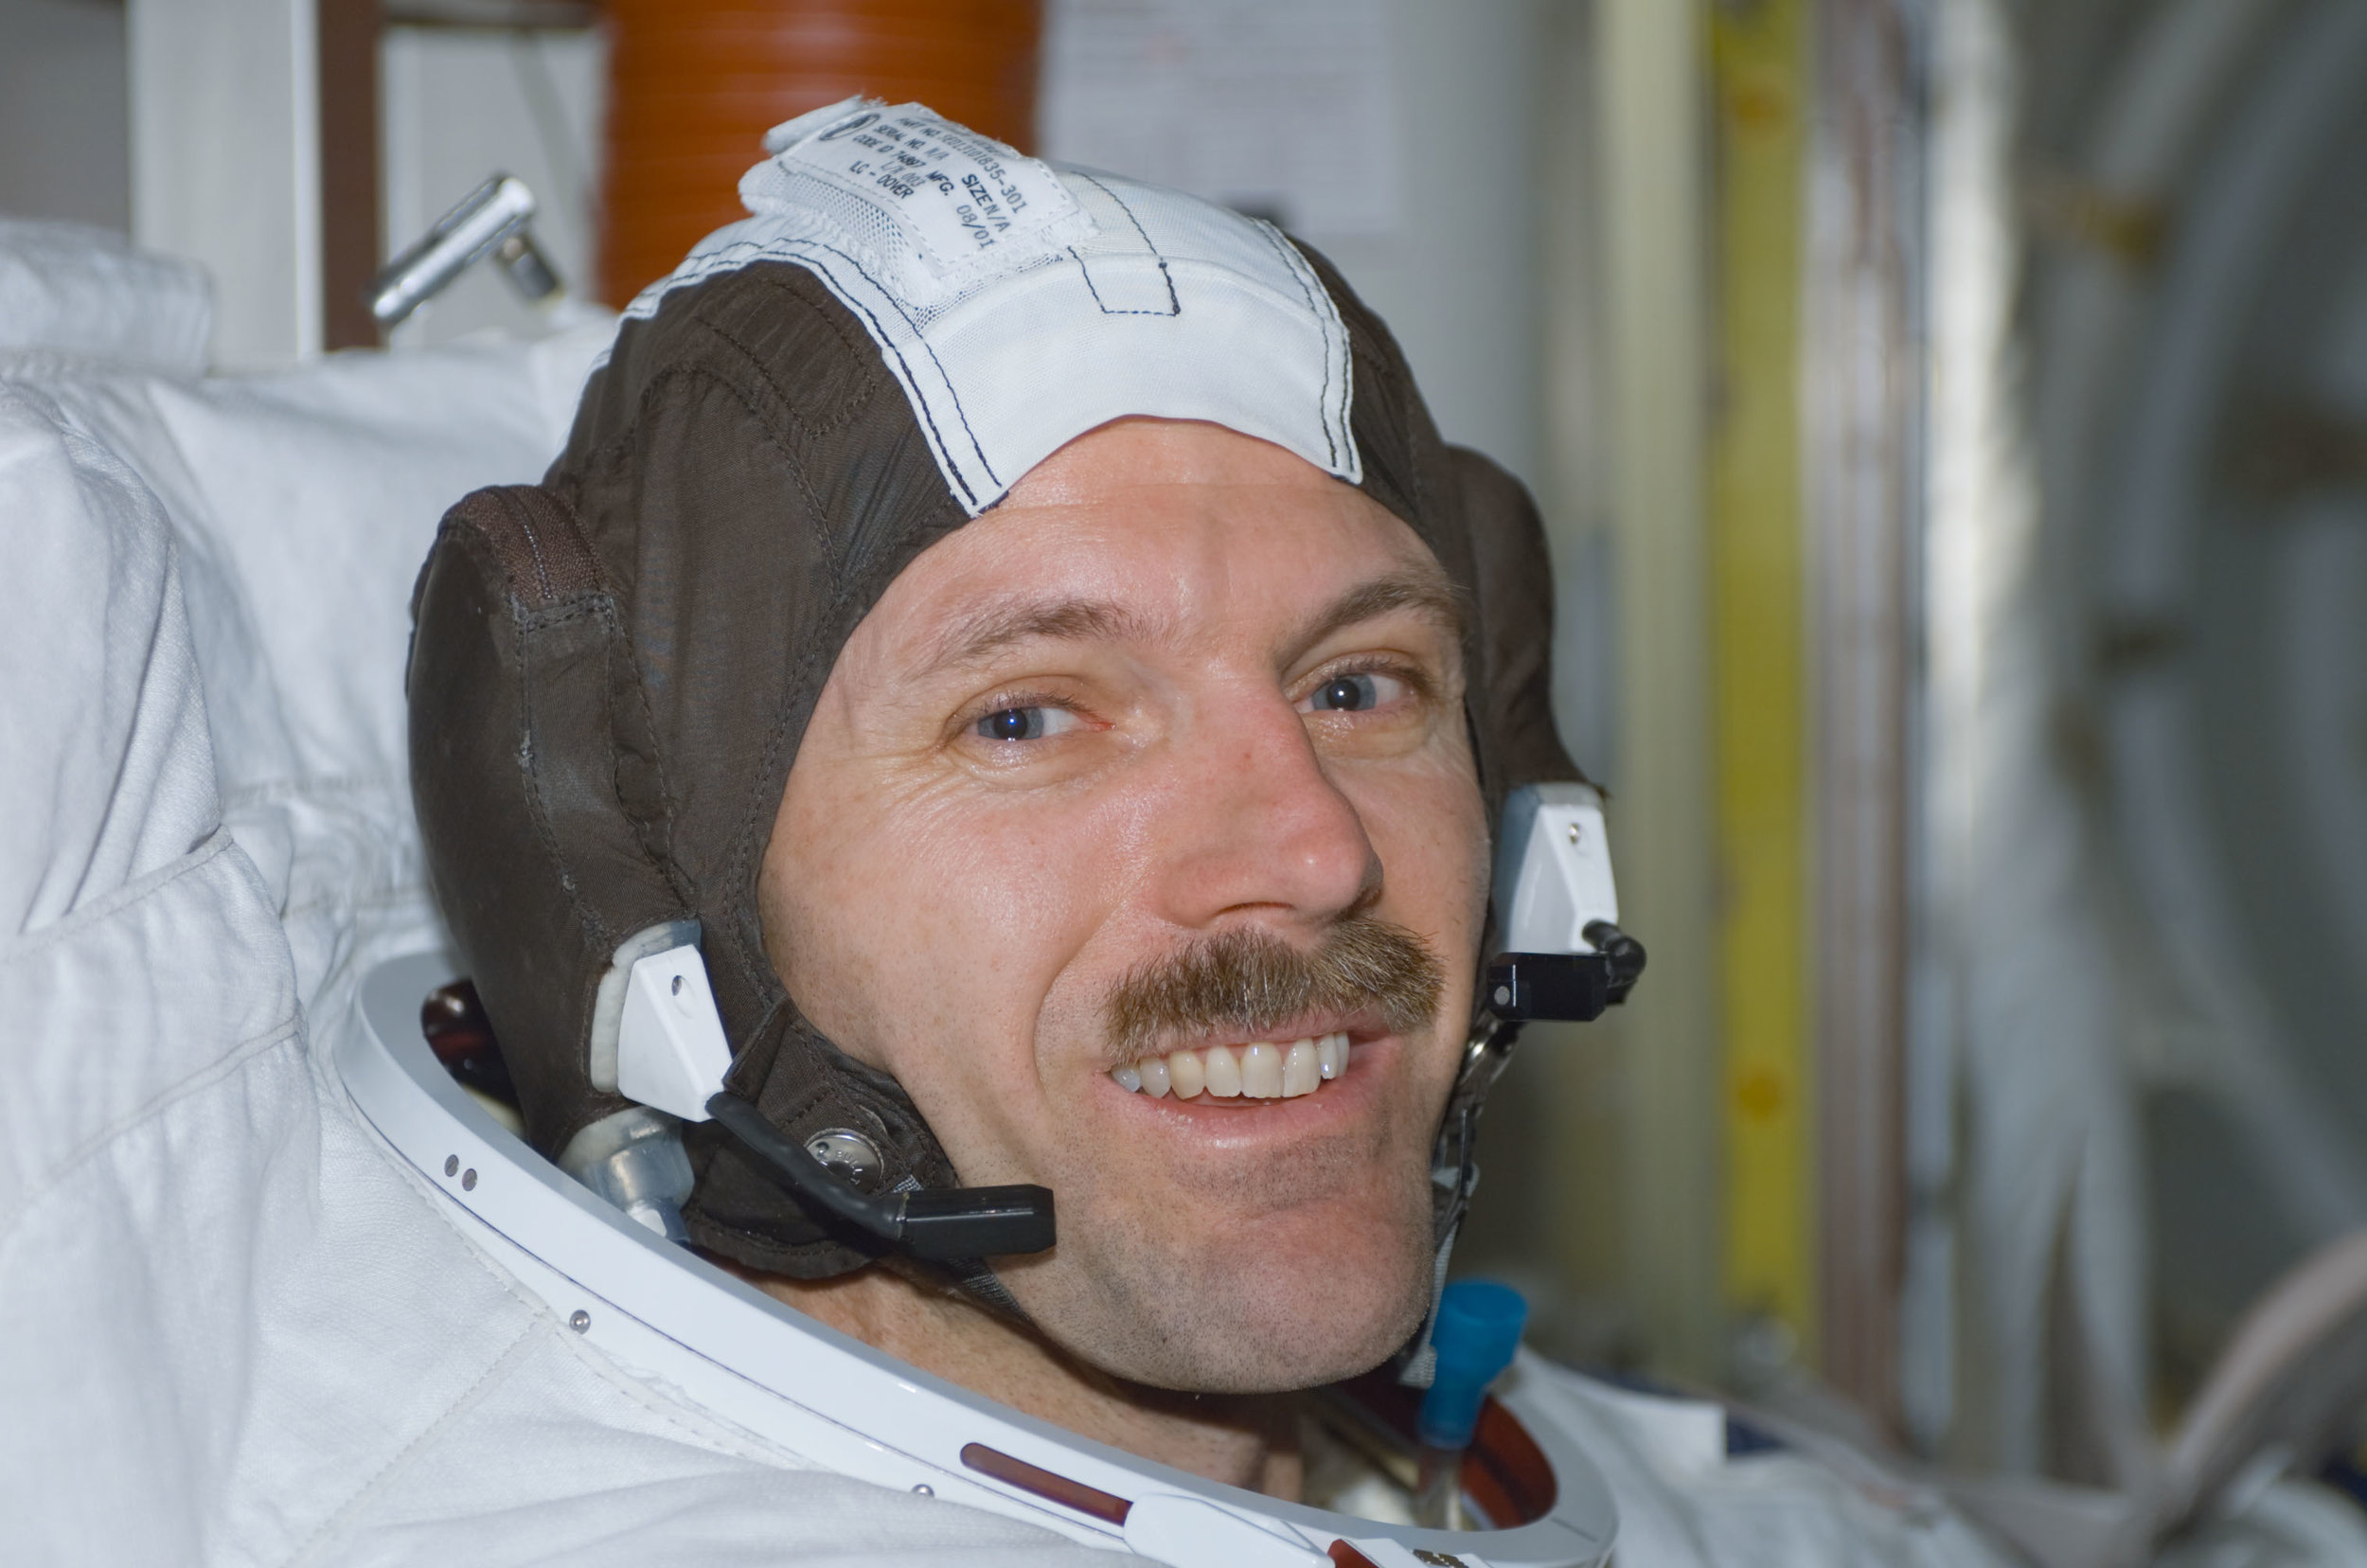 Post spacewalk smile on space station